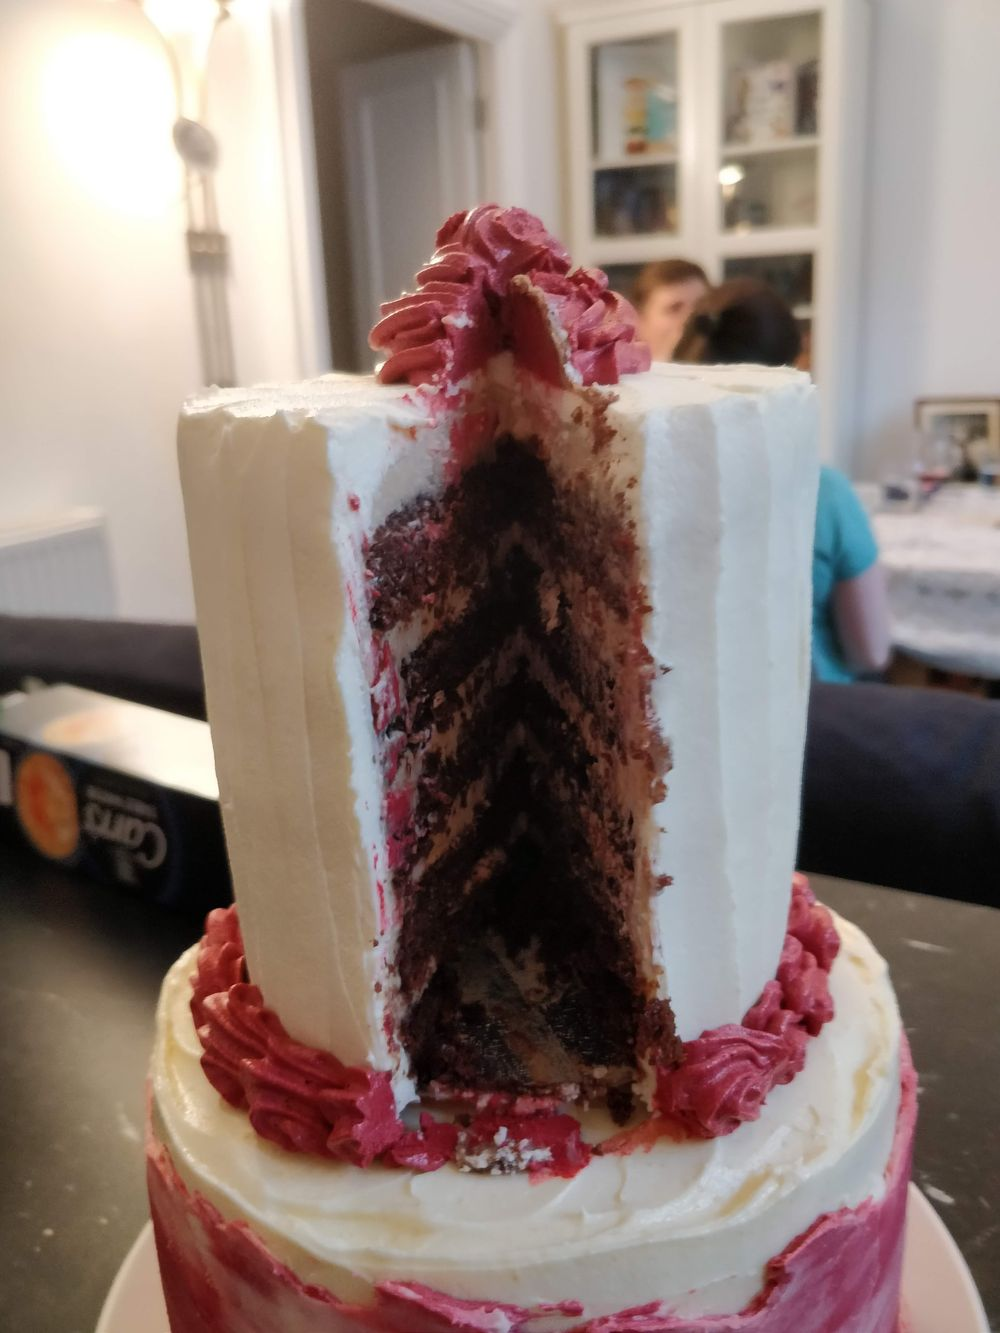 Fun Engagement Cake - image 3 - student project